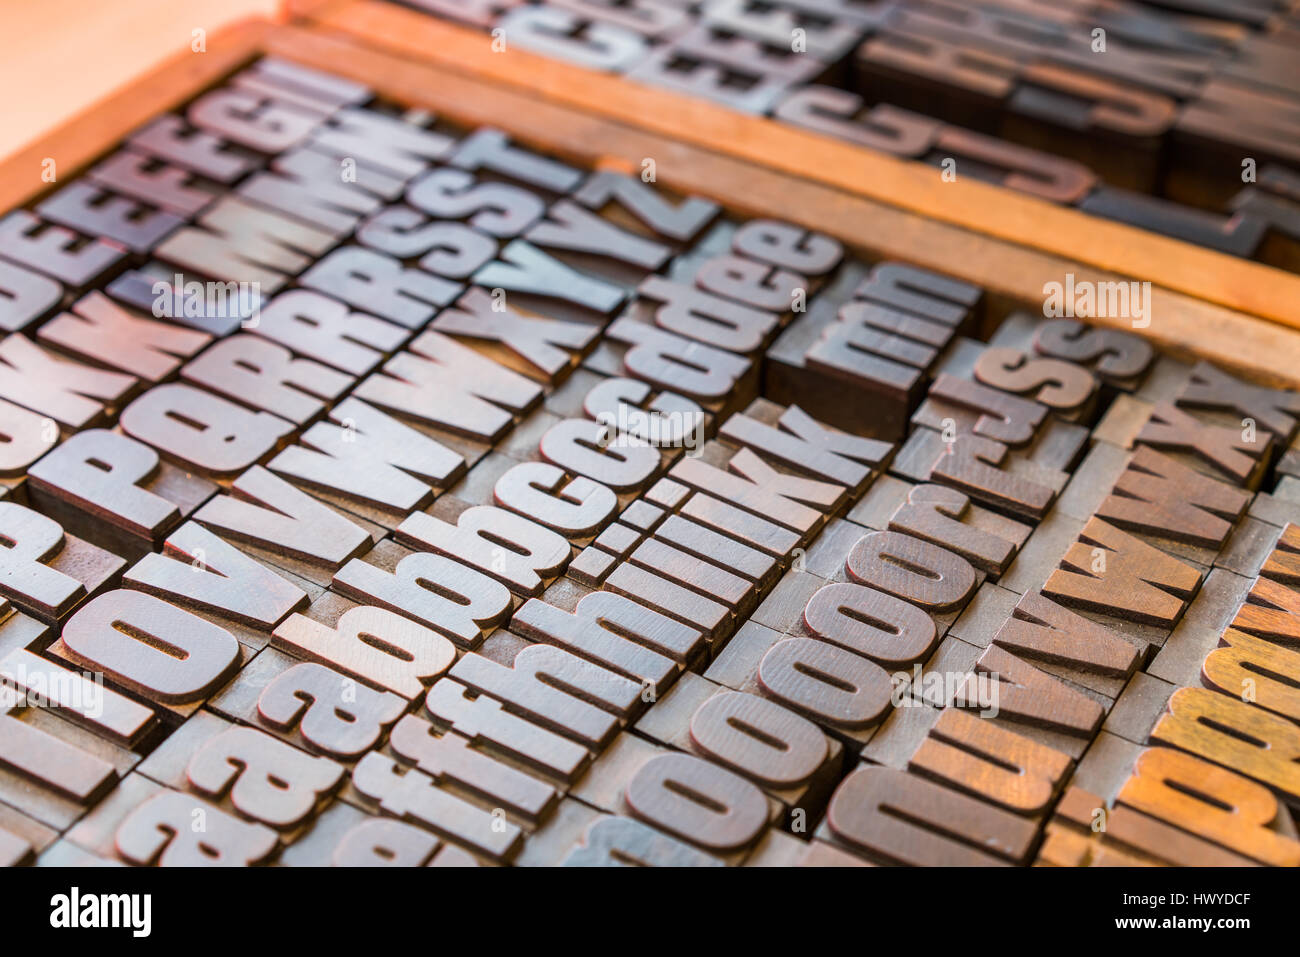 Wood Block Letter Stock Photos  Wood Block Letter Stock Images  Alamy